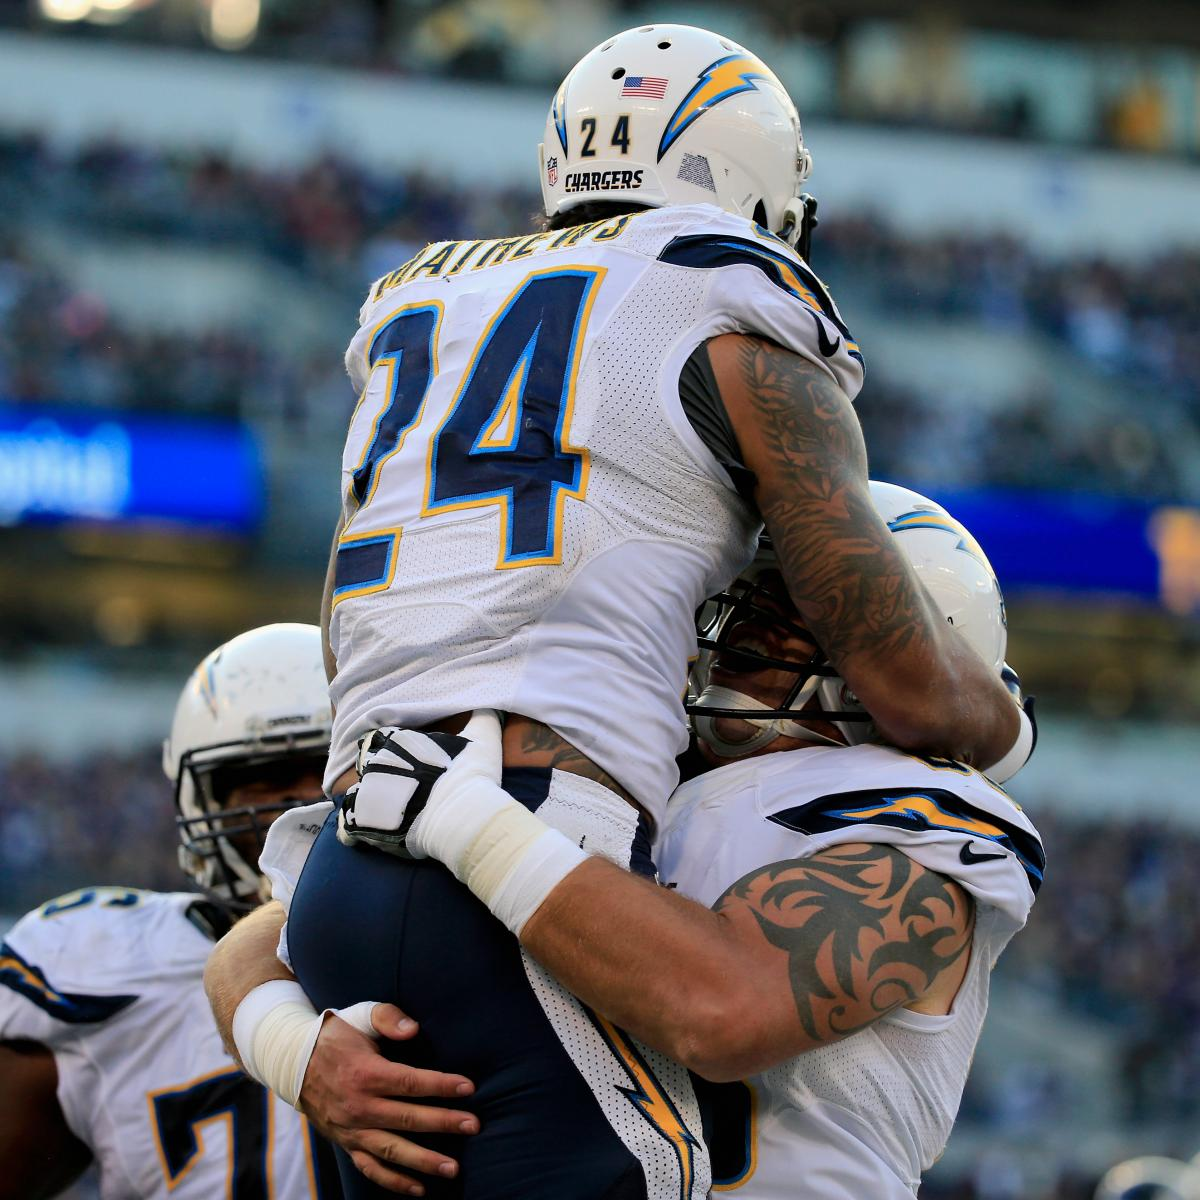 San Diego Chargers Current Score: Chargers Vs. Ravens: Score And Twitter Reaction From 2014